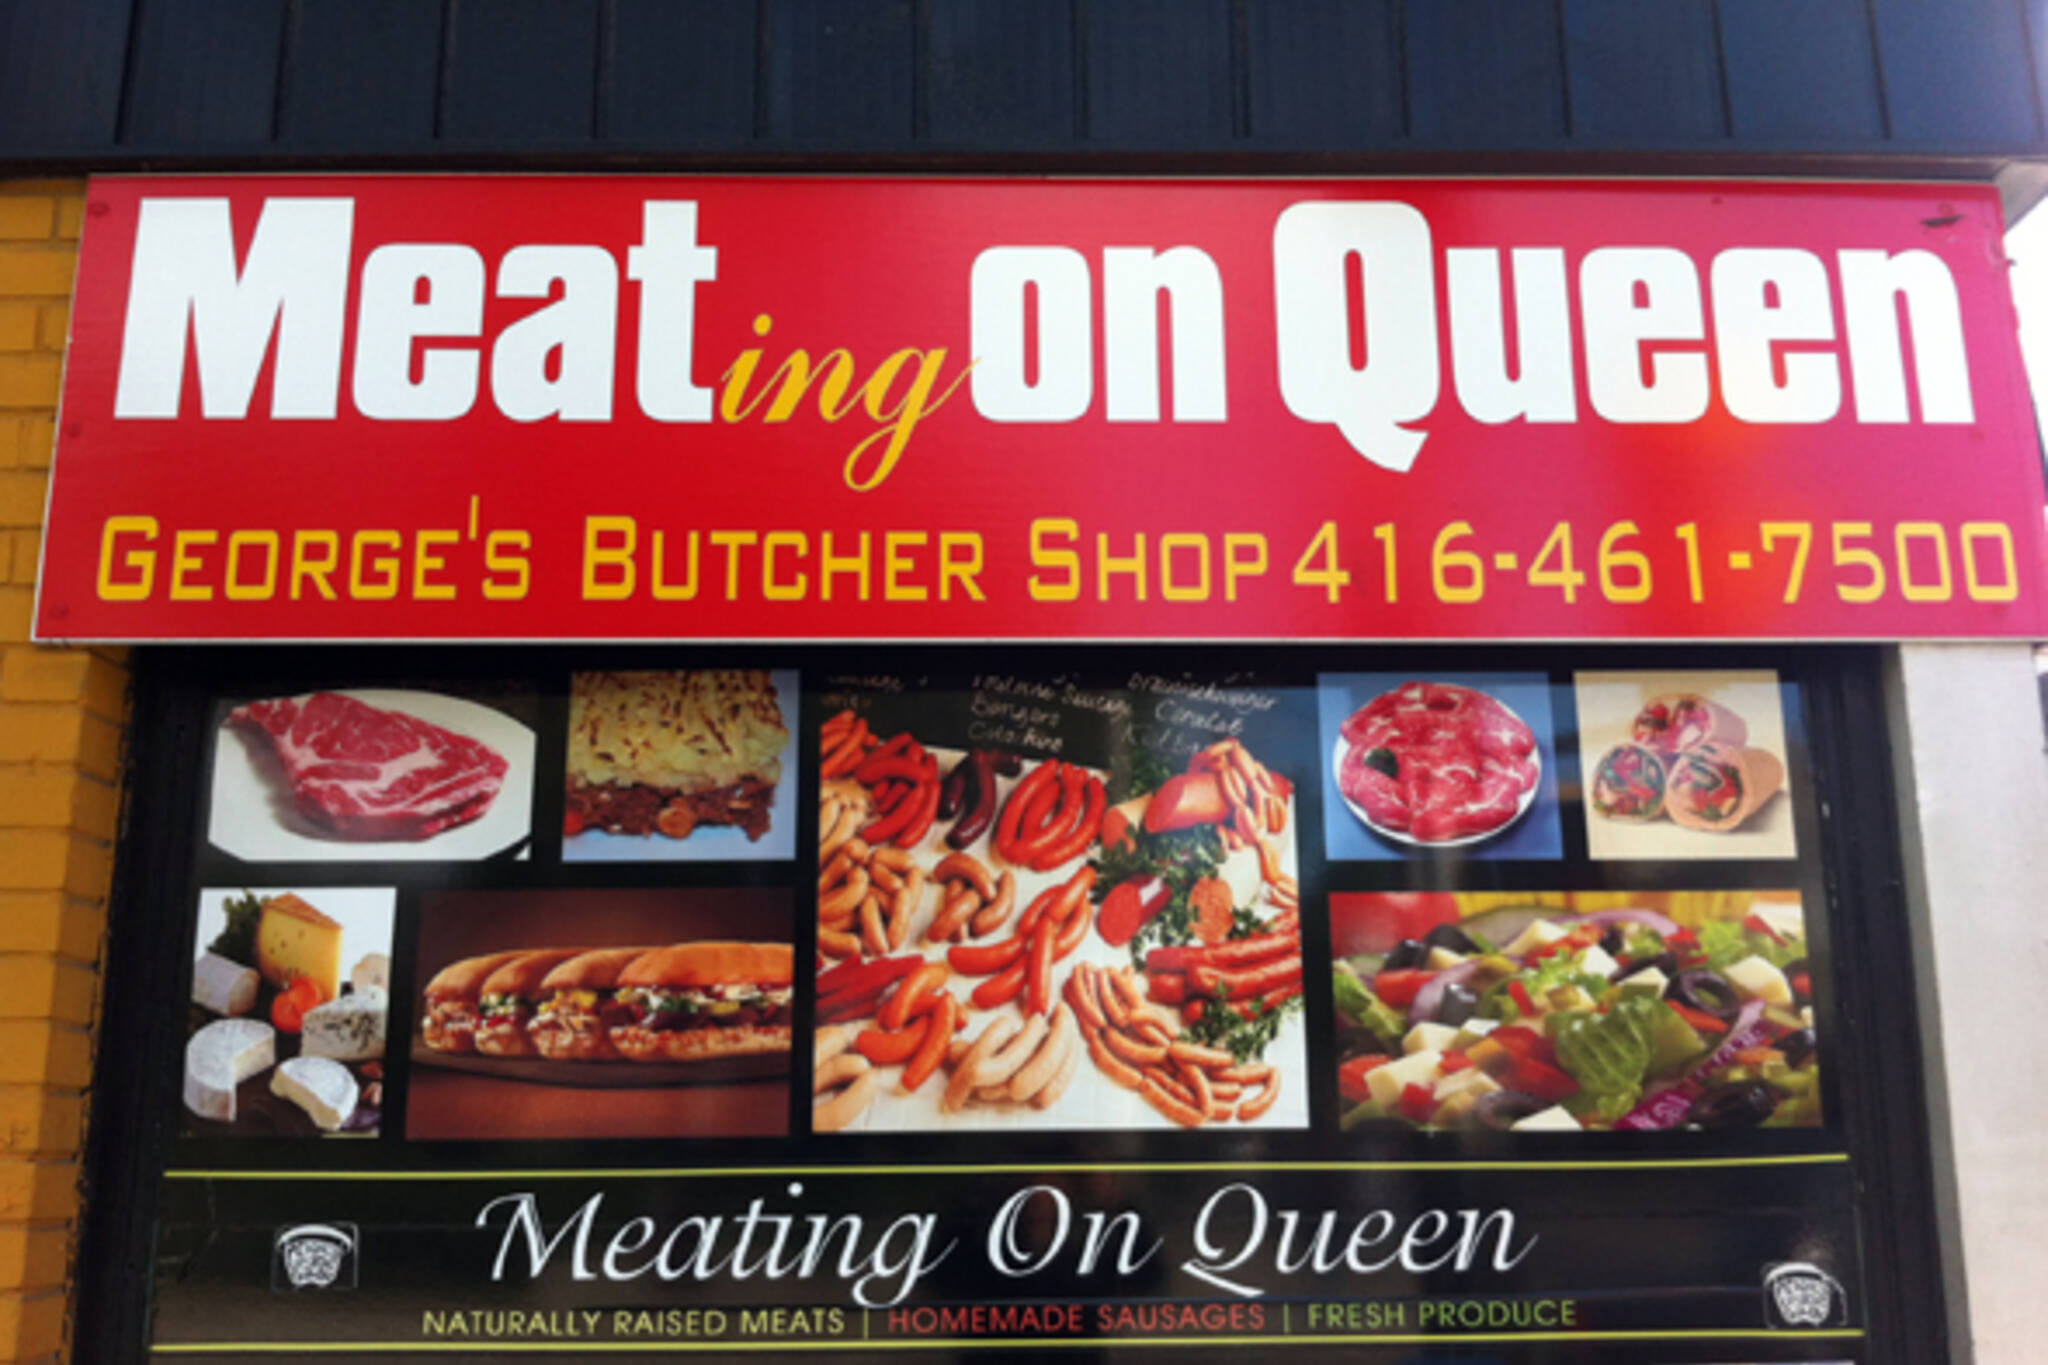 Meating on Queen